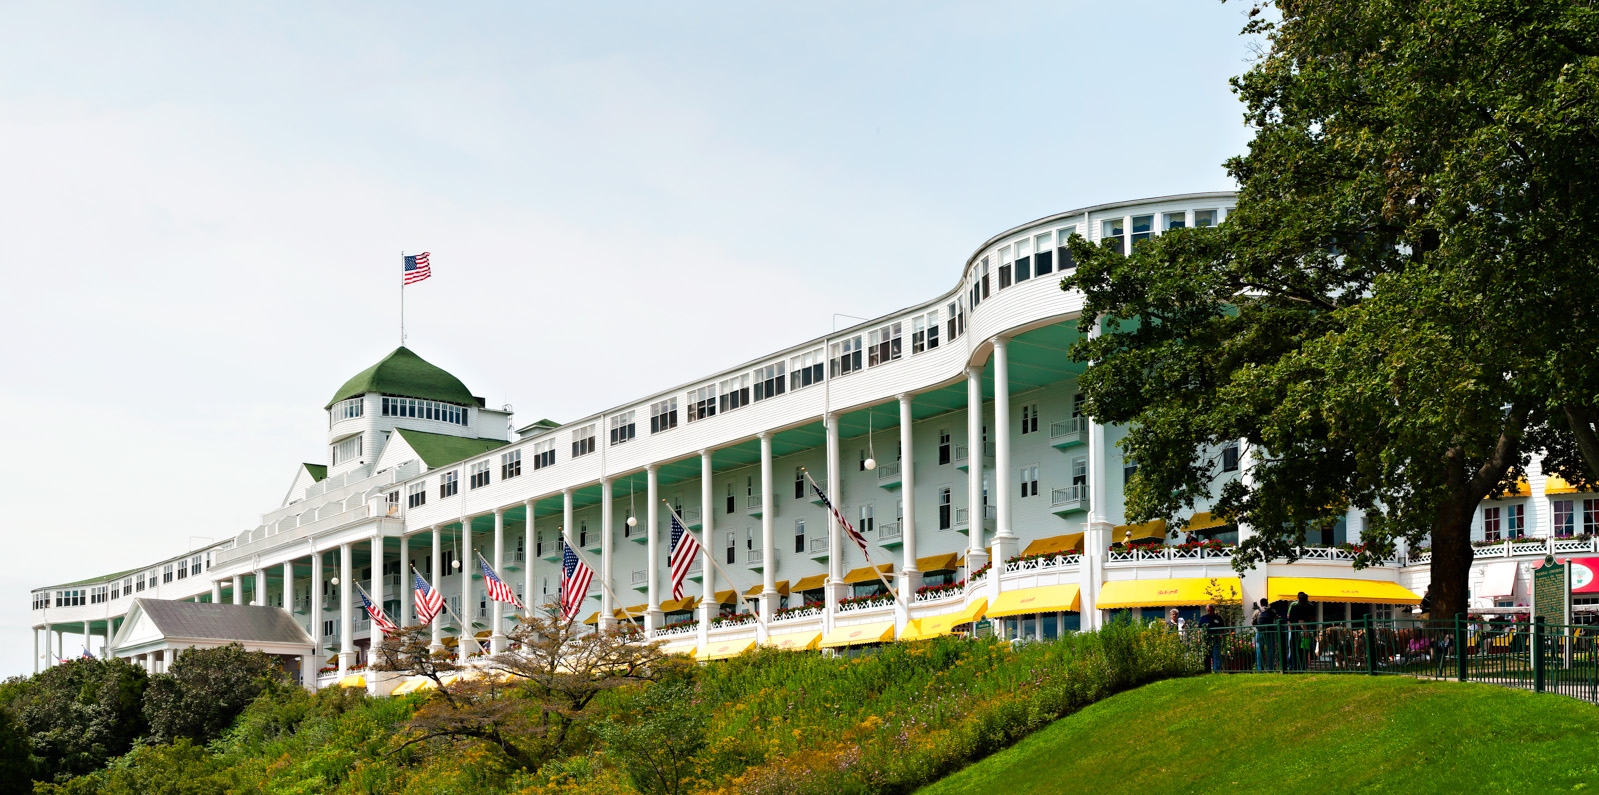 Grand hotel mackinac island michigan images and notes for Grand hotel